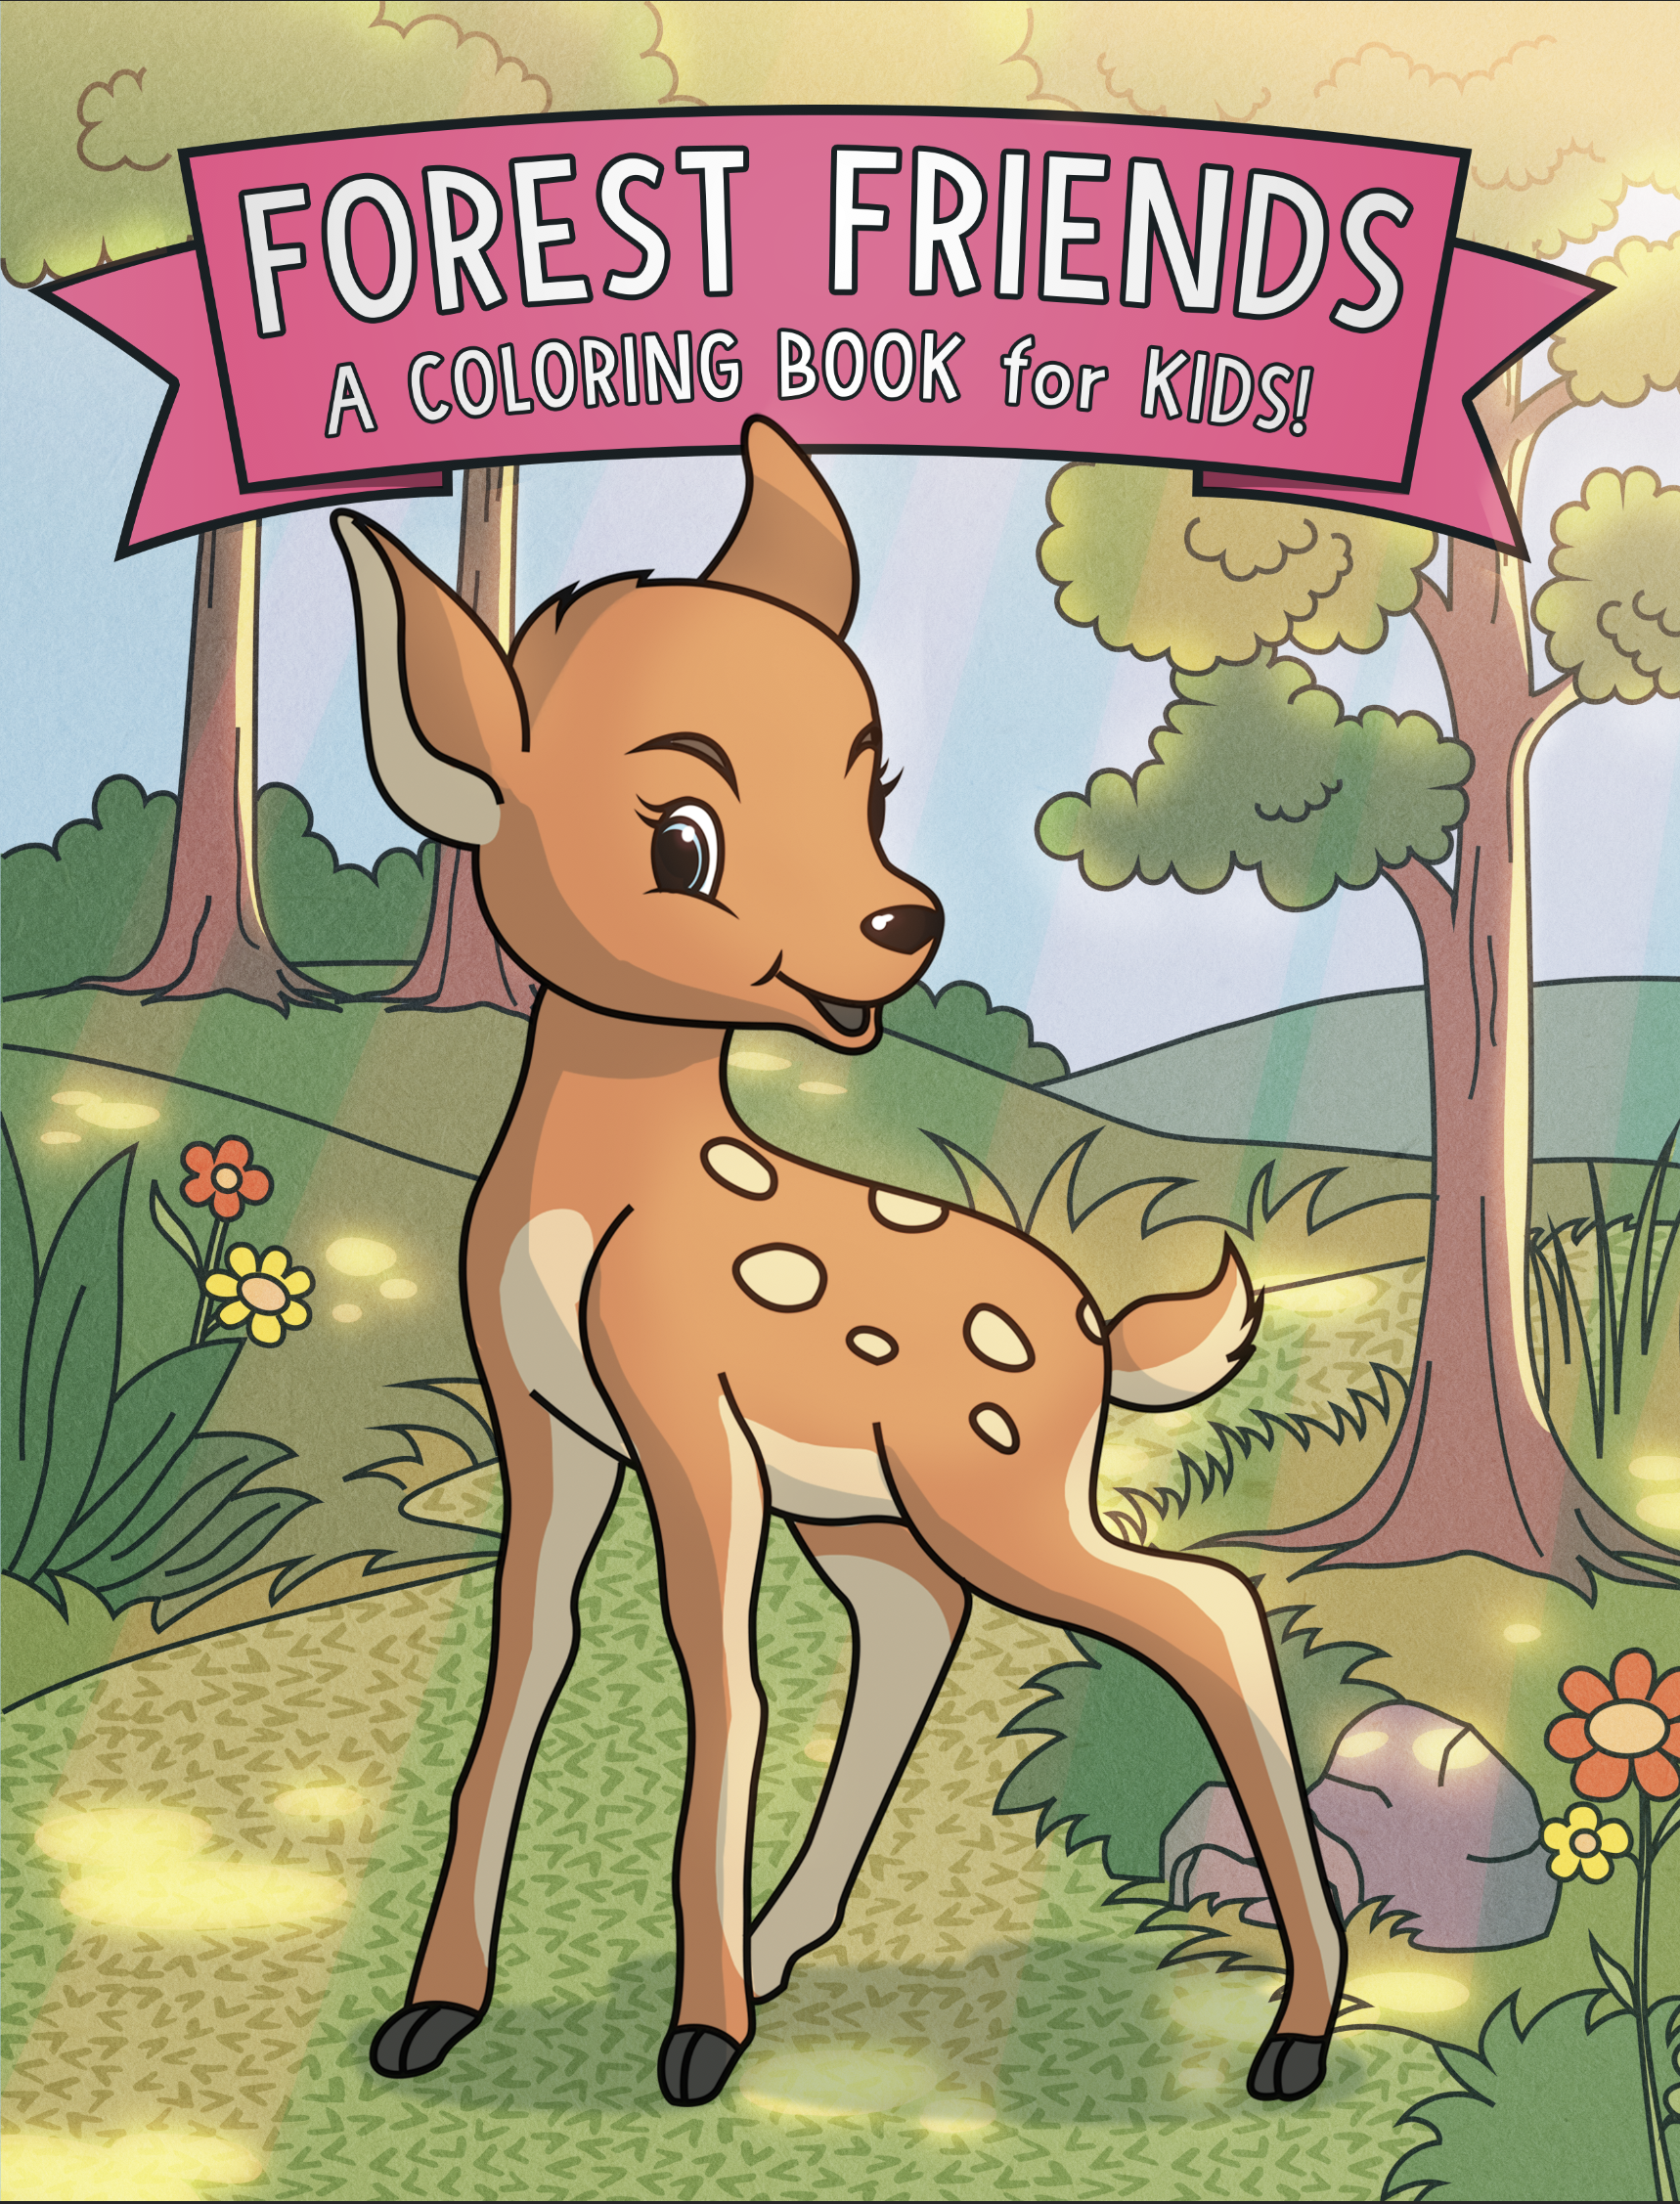 ForestFriends_Cover.png